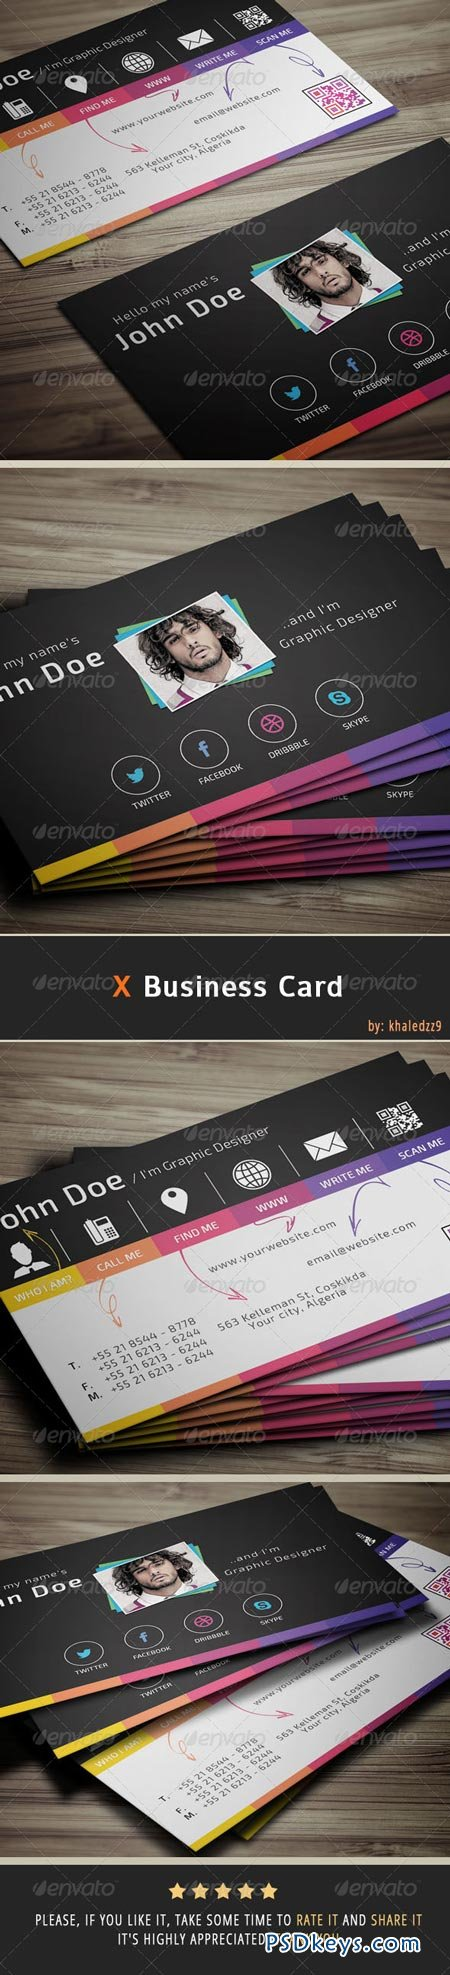 X Business Card 6848741